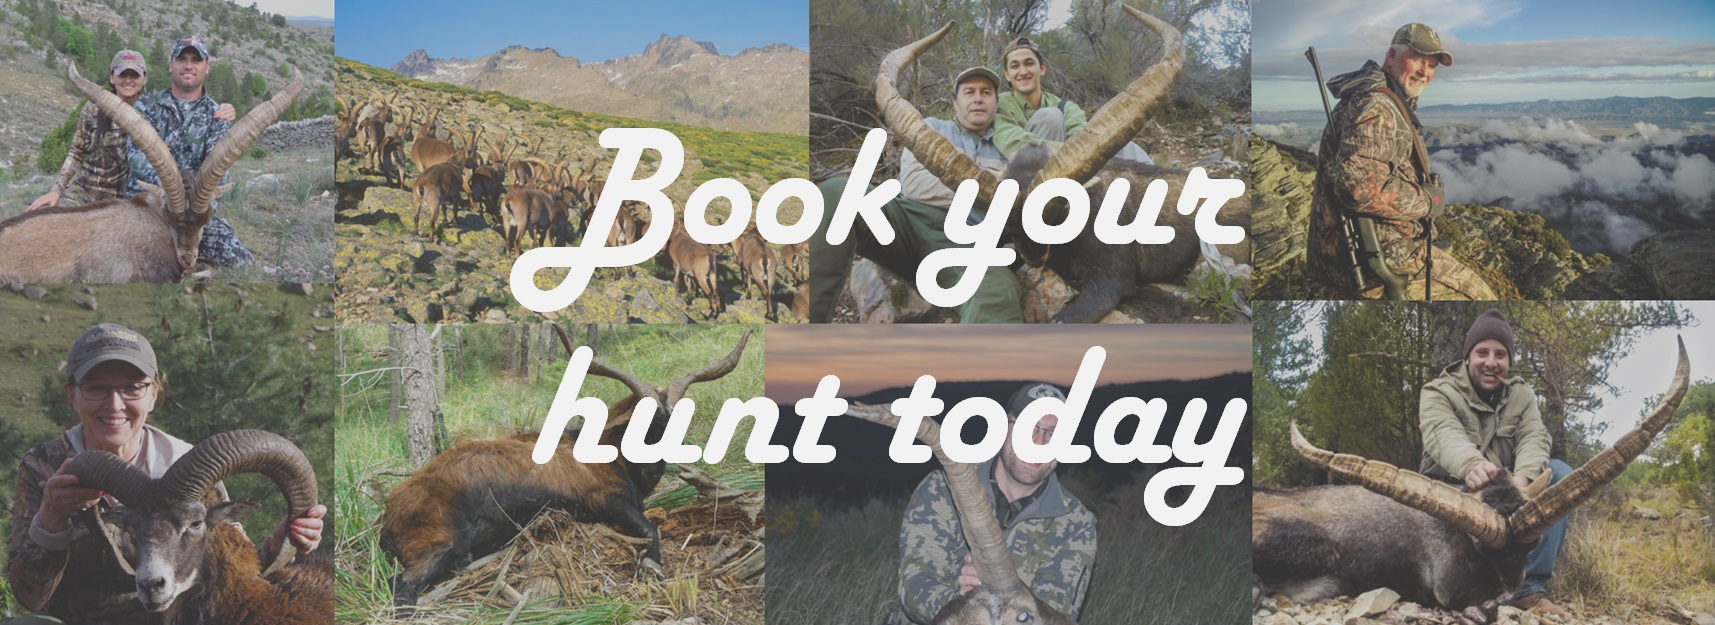 Book-your-hunt-wallpaper